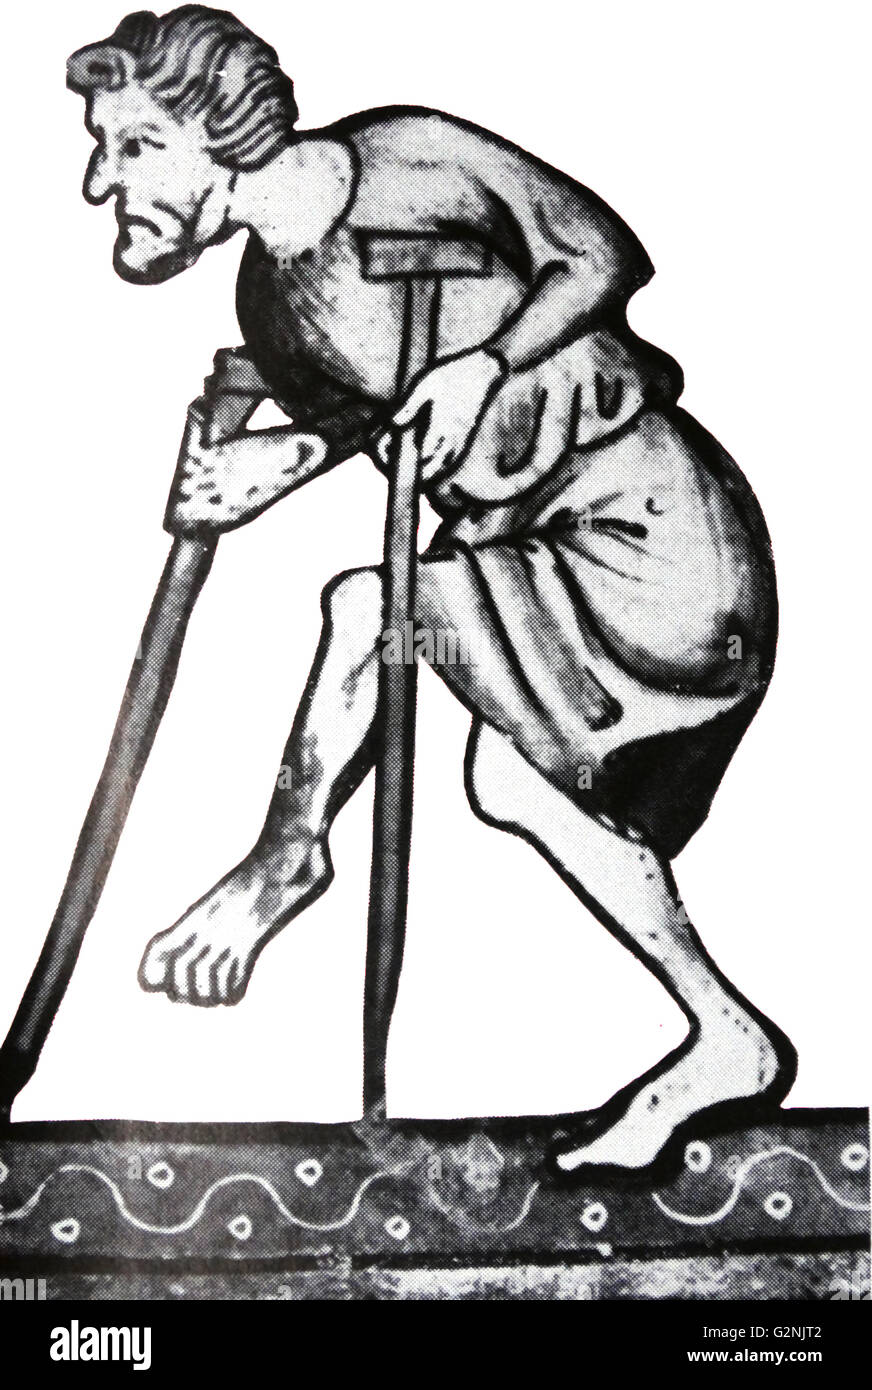 Illustration of a man with a deformed foot and crutches - Stock Image